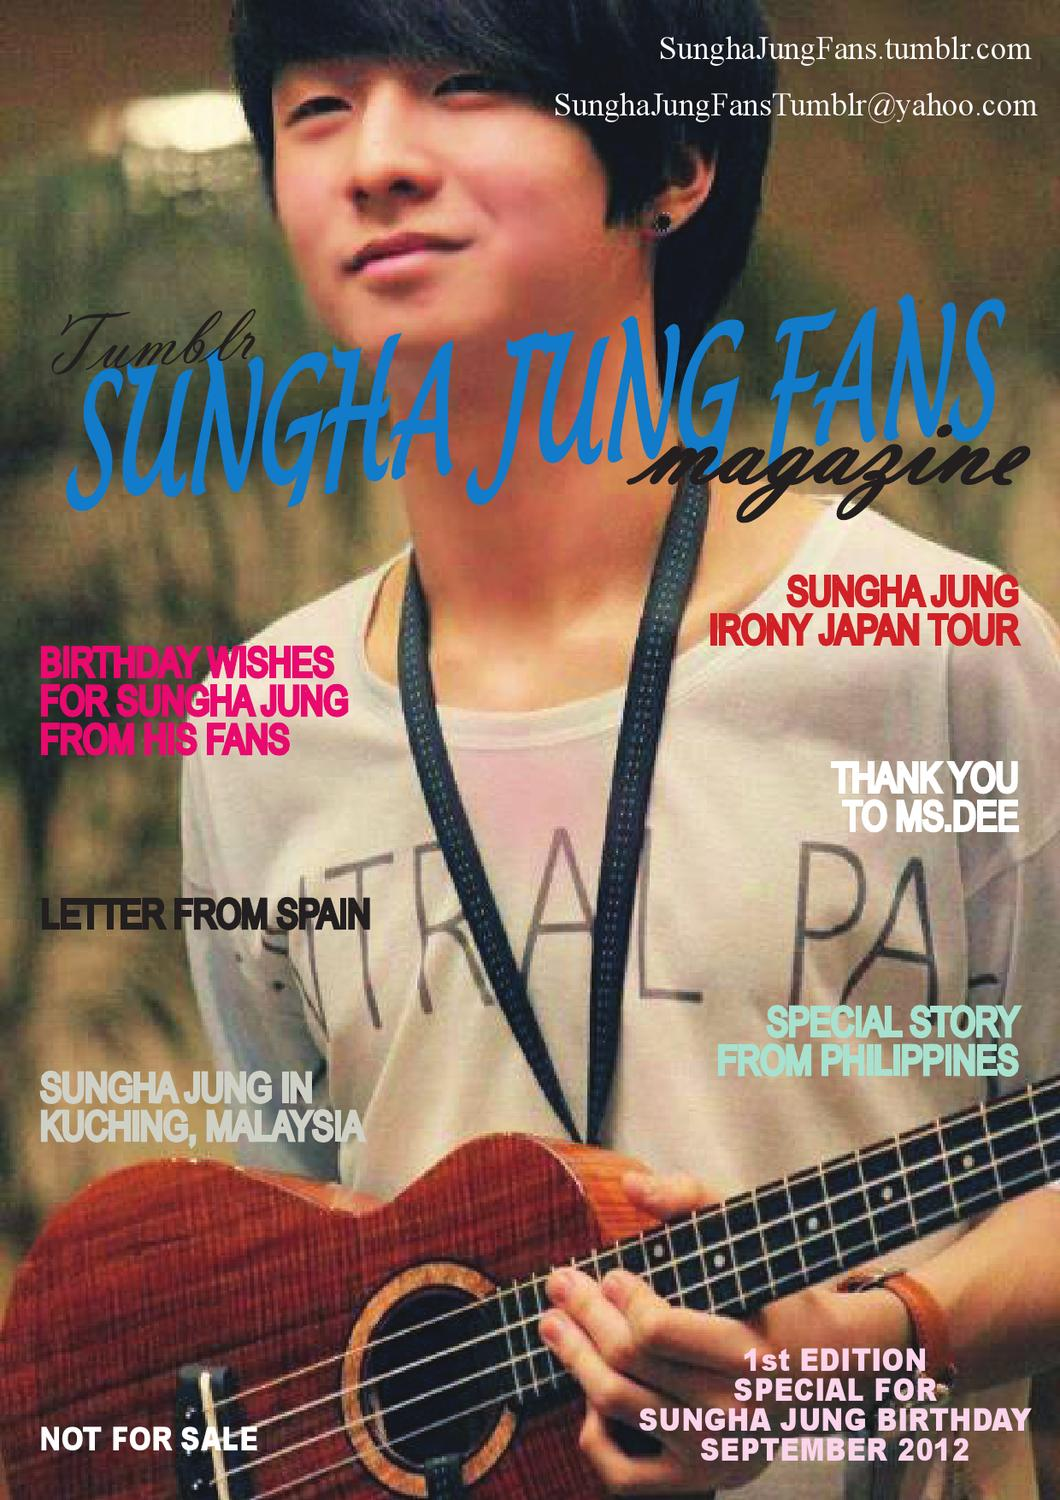 1st Edition Sungha Jung Fans Tumblr Online Magazine By Sungha Jung Fans Tumblr Issuu